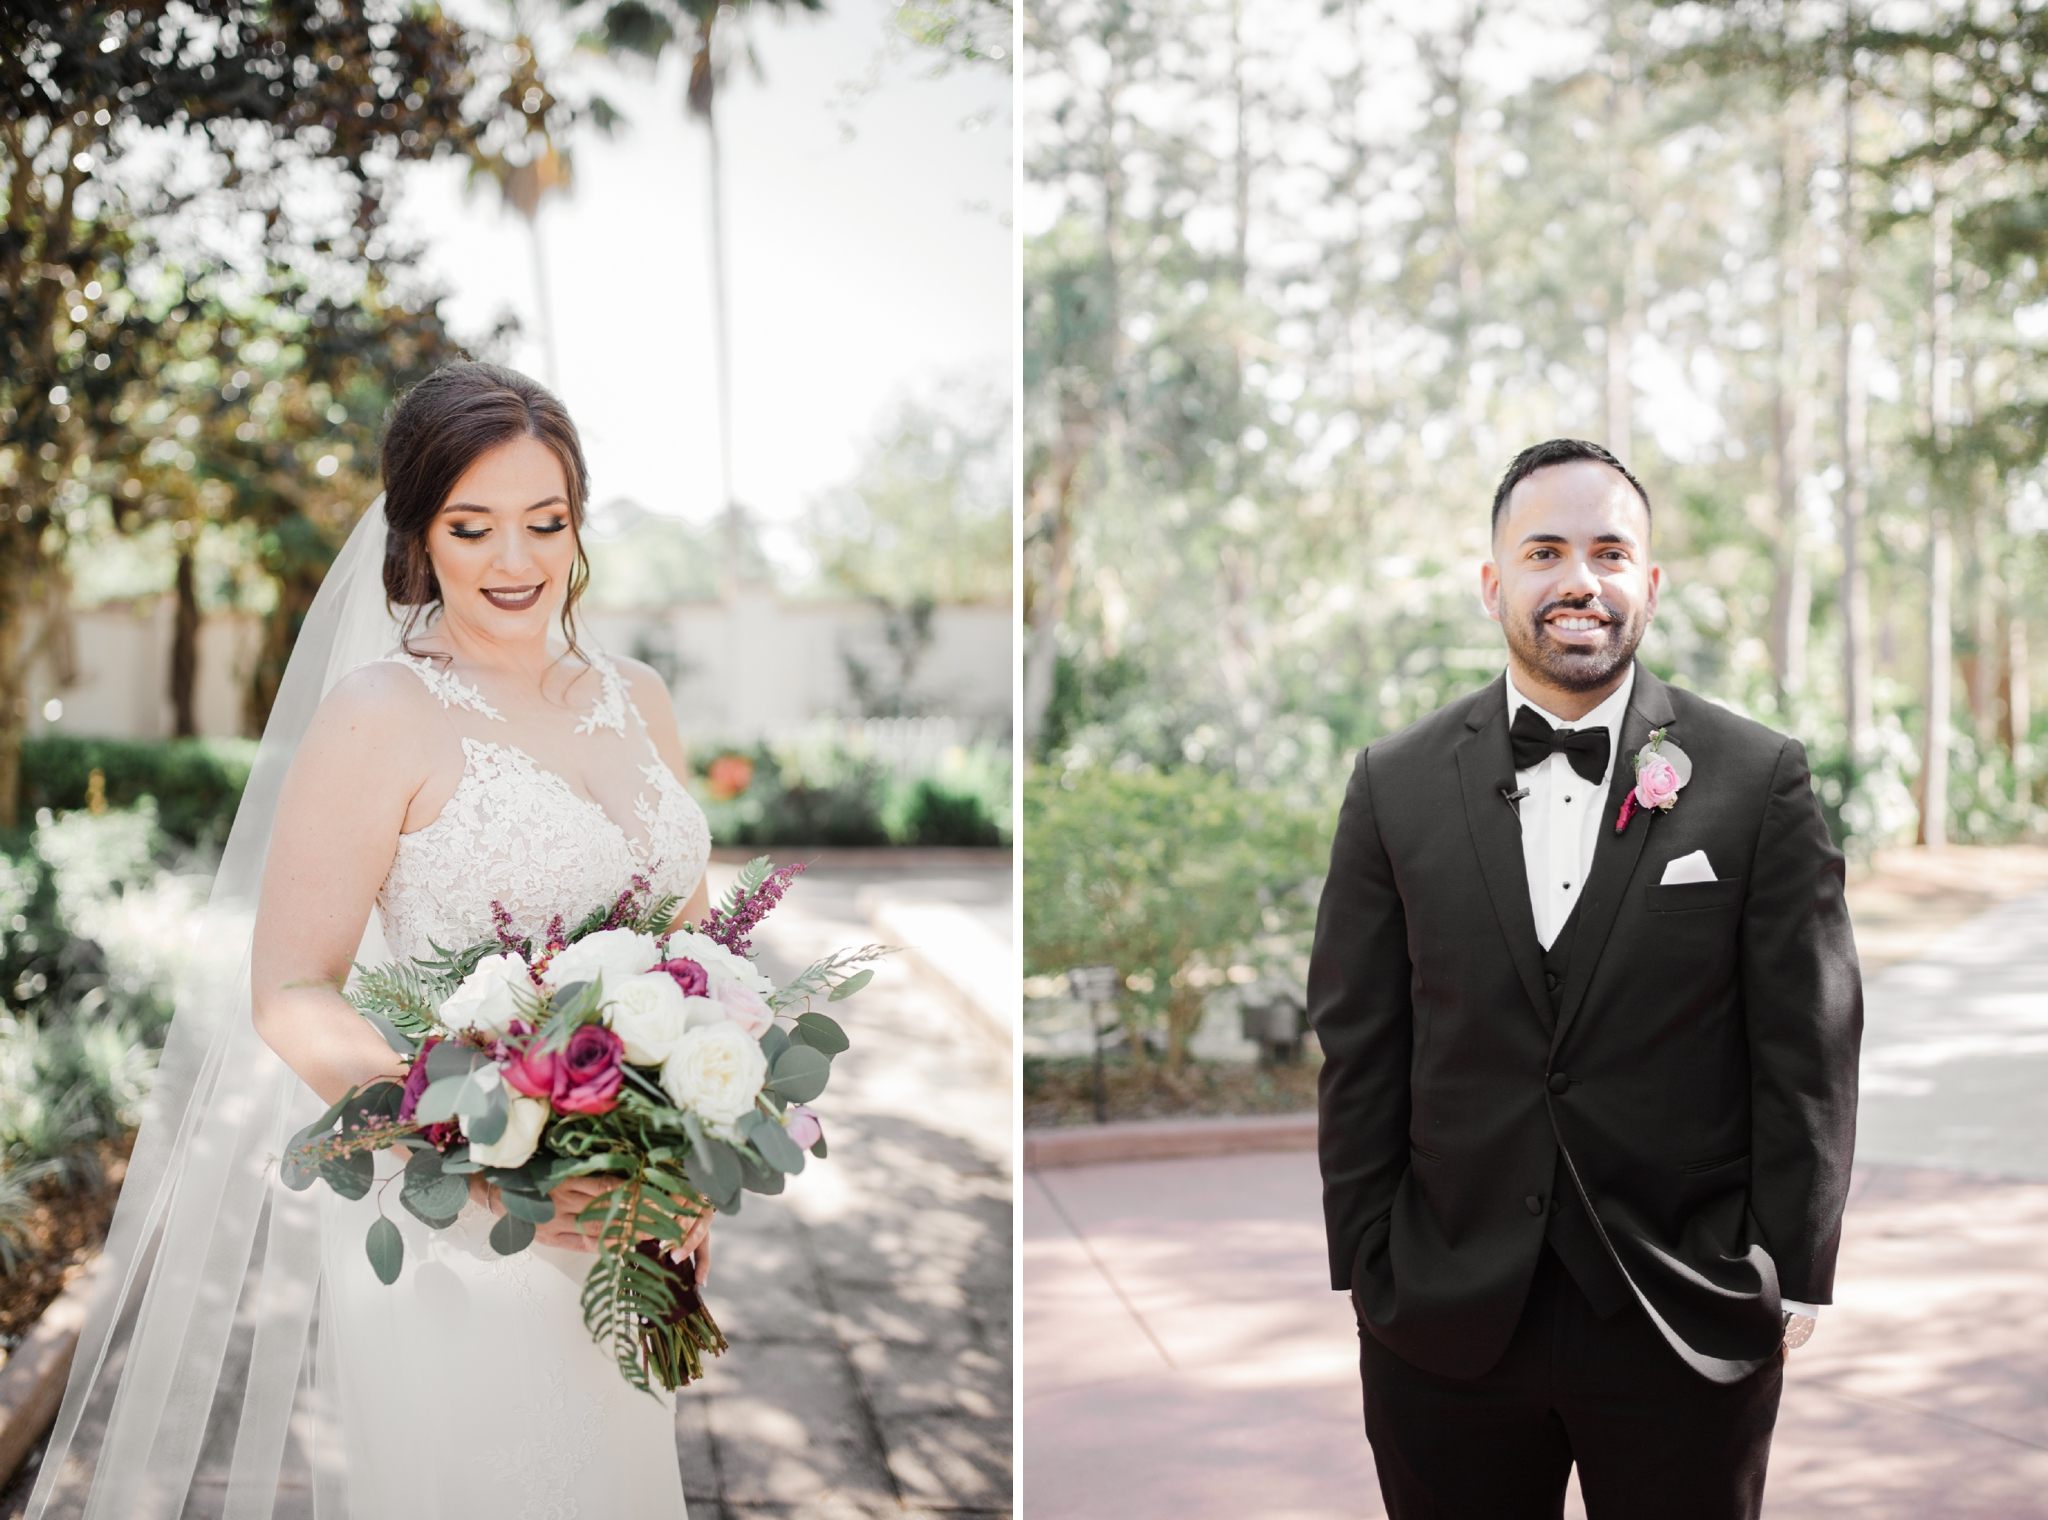 WEDDING PLANNING | SPECIAL MOMENTS EVENT PLANNING  VENUE | BOTANICAL GARDENS, TAMPA FL